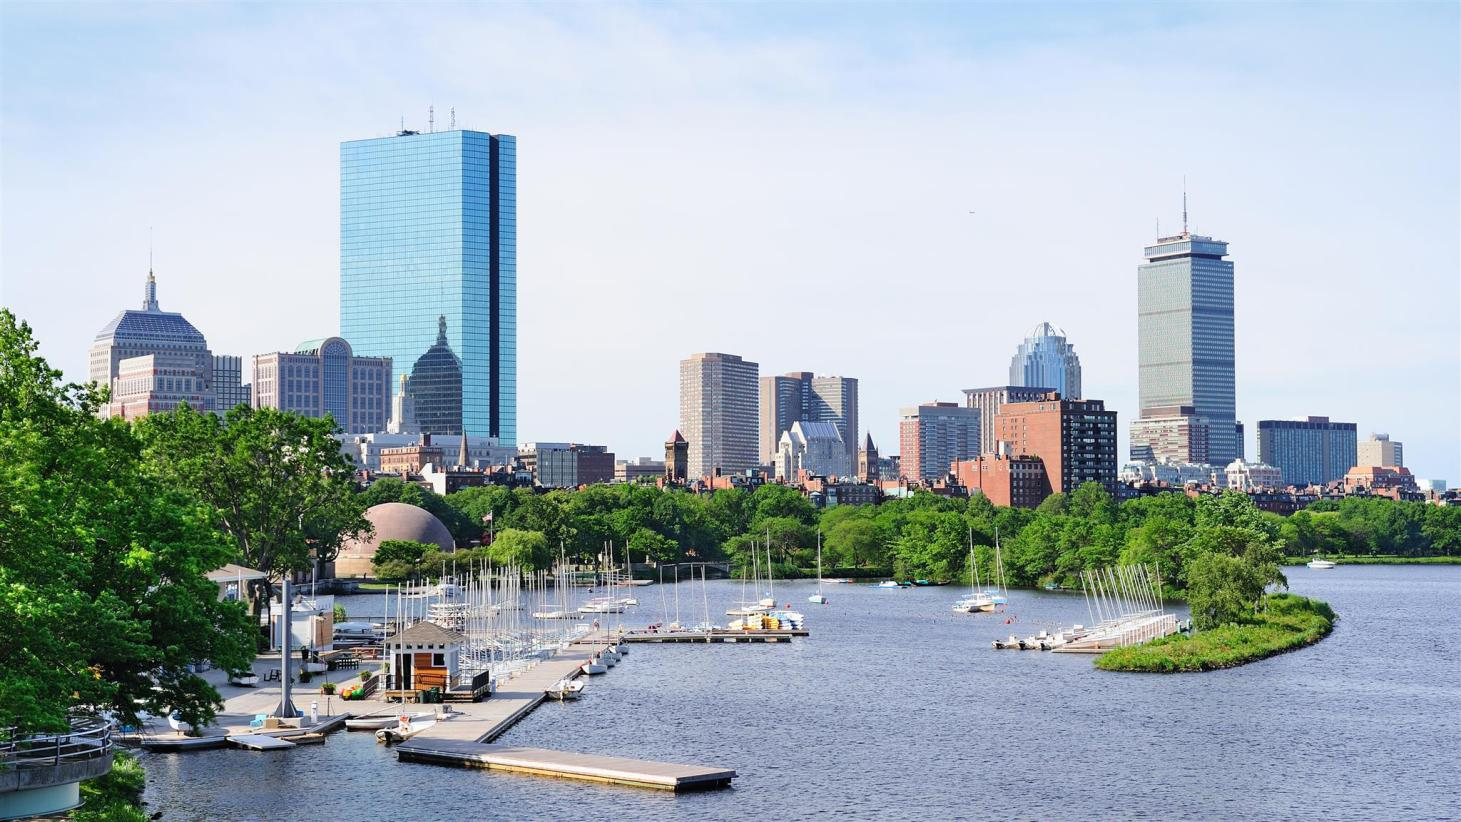 30 Best Boston Ma Hotels Free Cancellation 2021 Price Lists Reviews Of The Best Hotels In Boston Ma United States